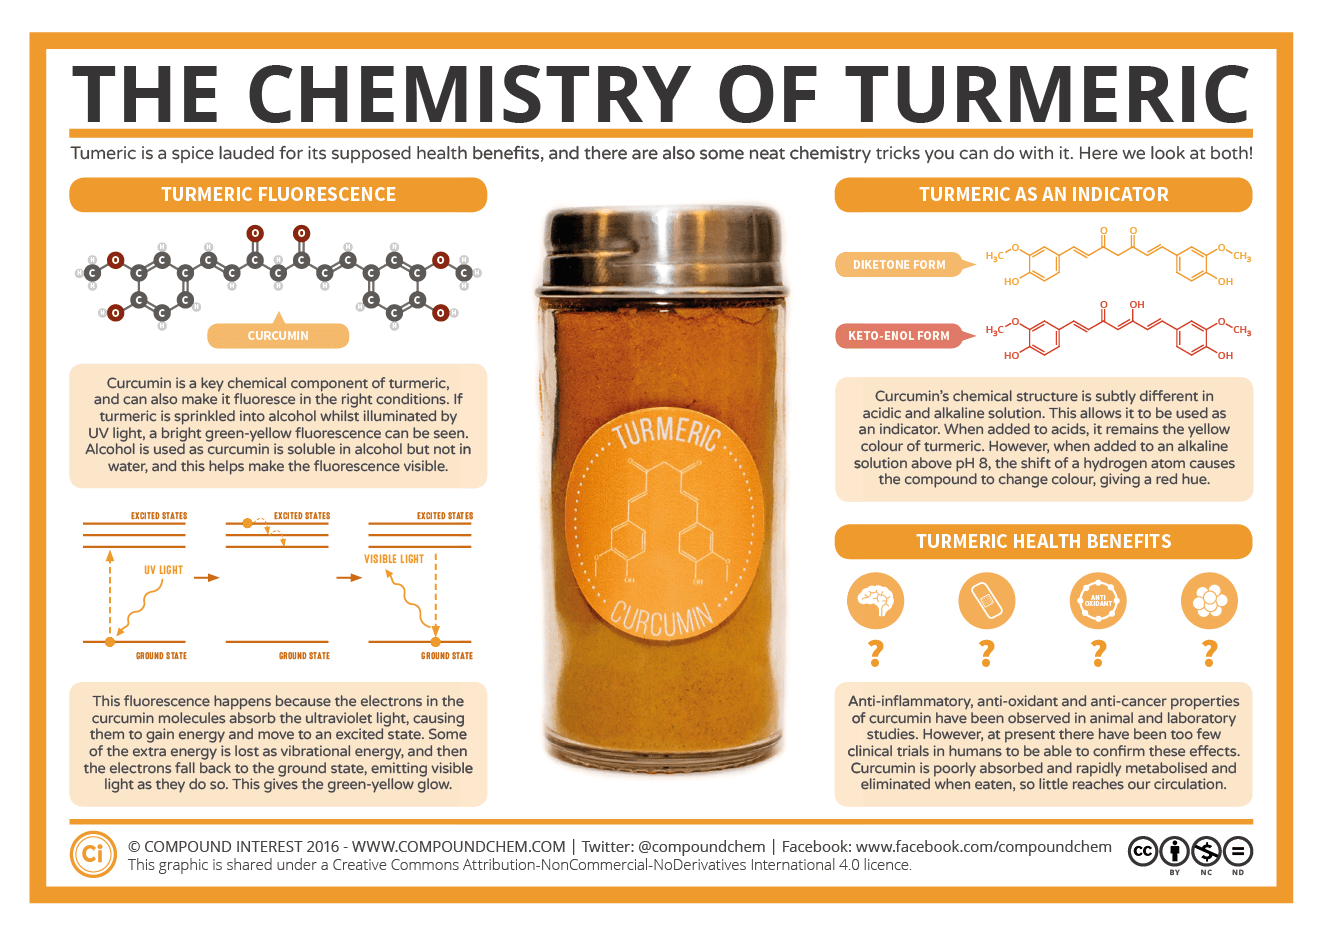 Chemistry-of-Turmeric.png (1323×935)